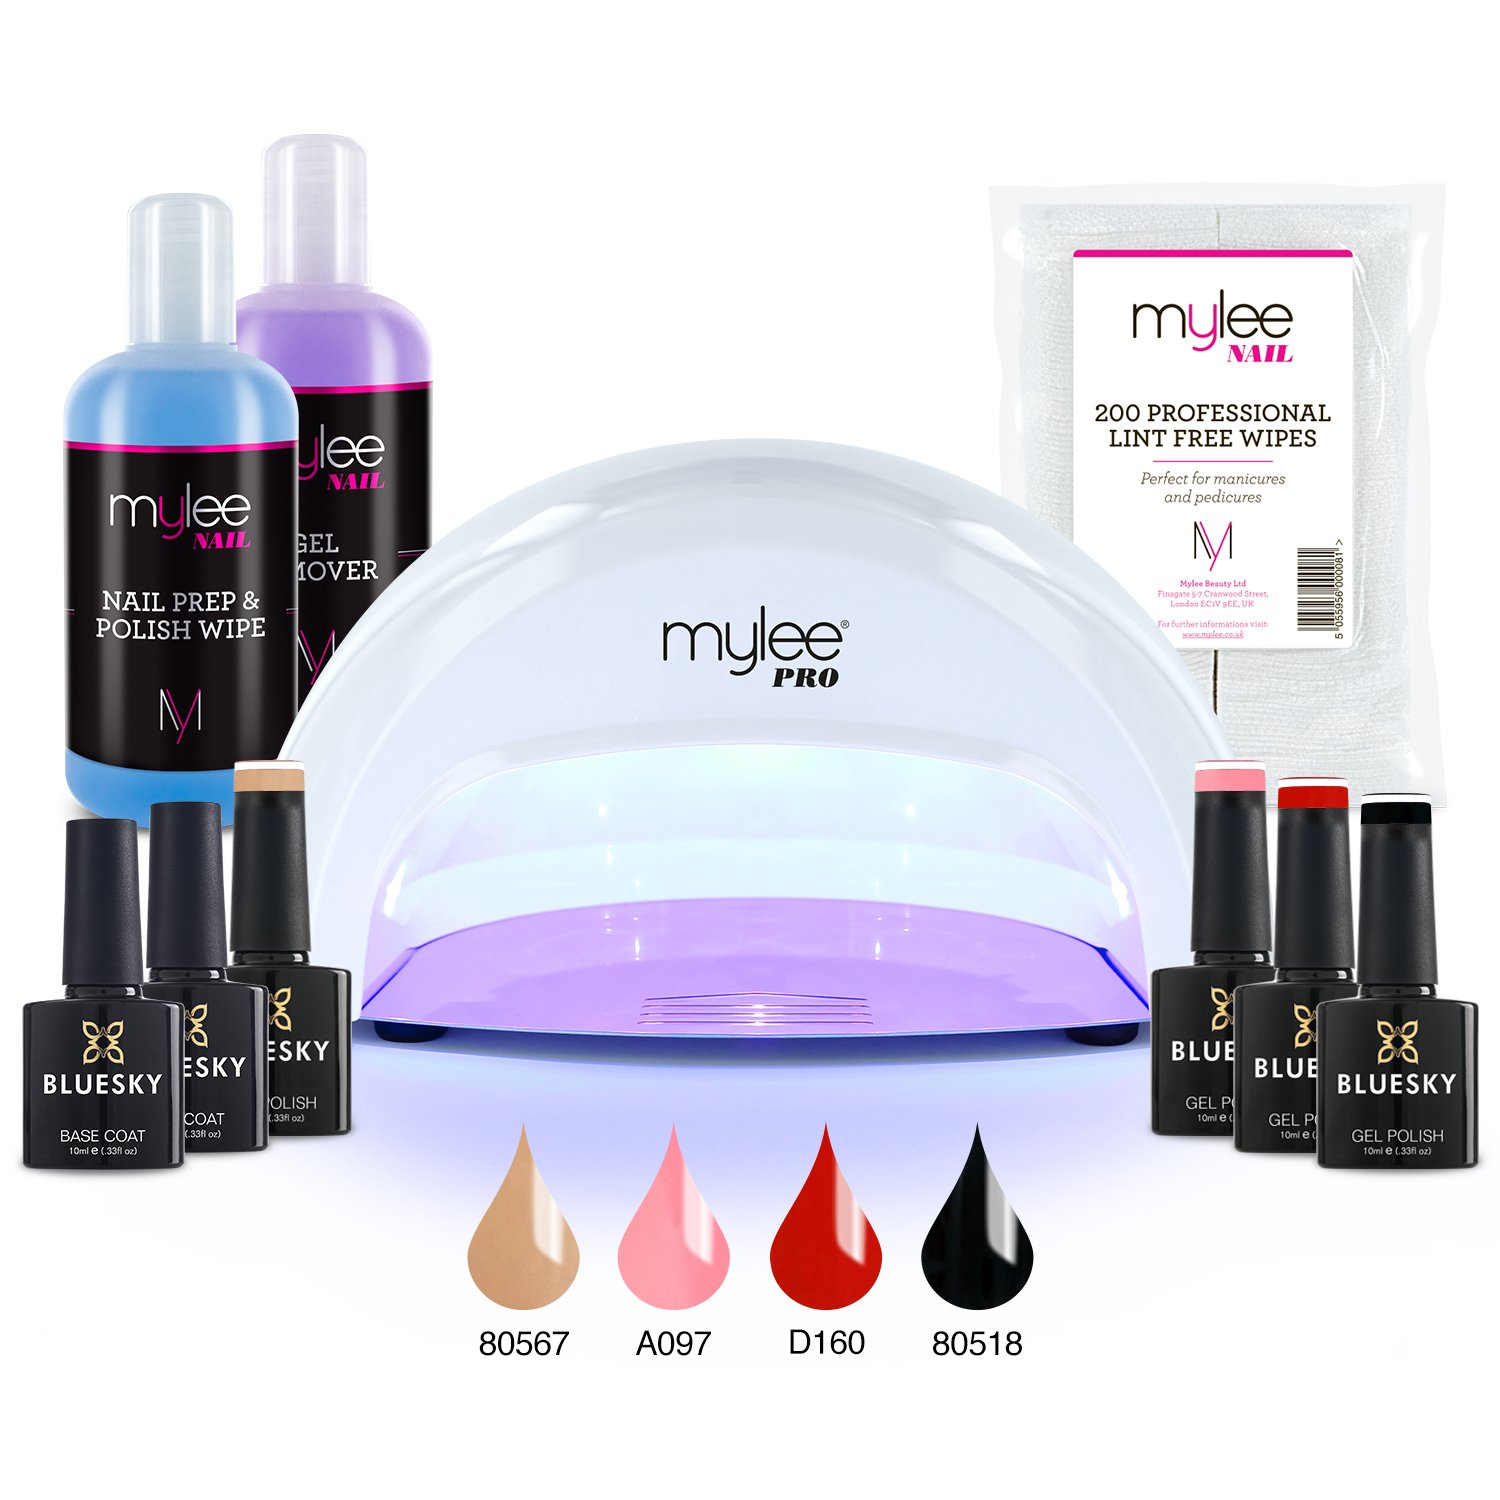 Mylee Complete Professional Gel Nail Polish LED Lamp Kit, Including 4x Bluesky Colours, Top & Base Coat, Mylee PRO Salon Series Convex Curing® LED Lamp, Prep & Wipe, Gel Remover and more (Kit with Black Lamp)